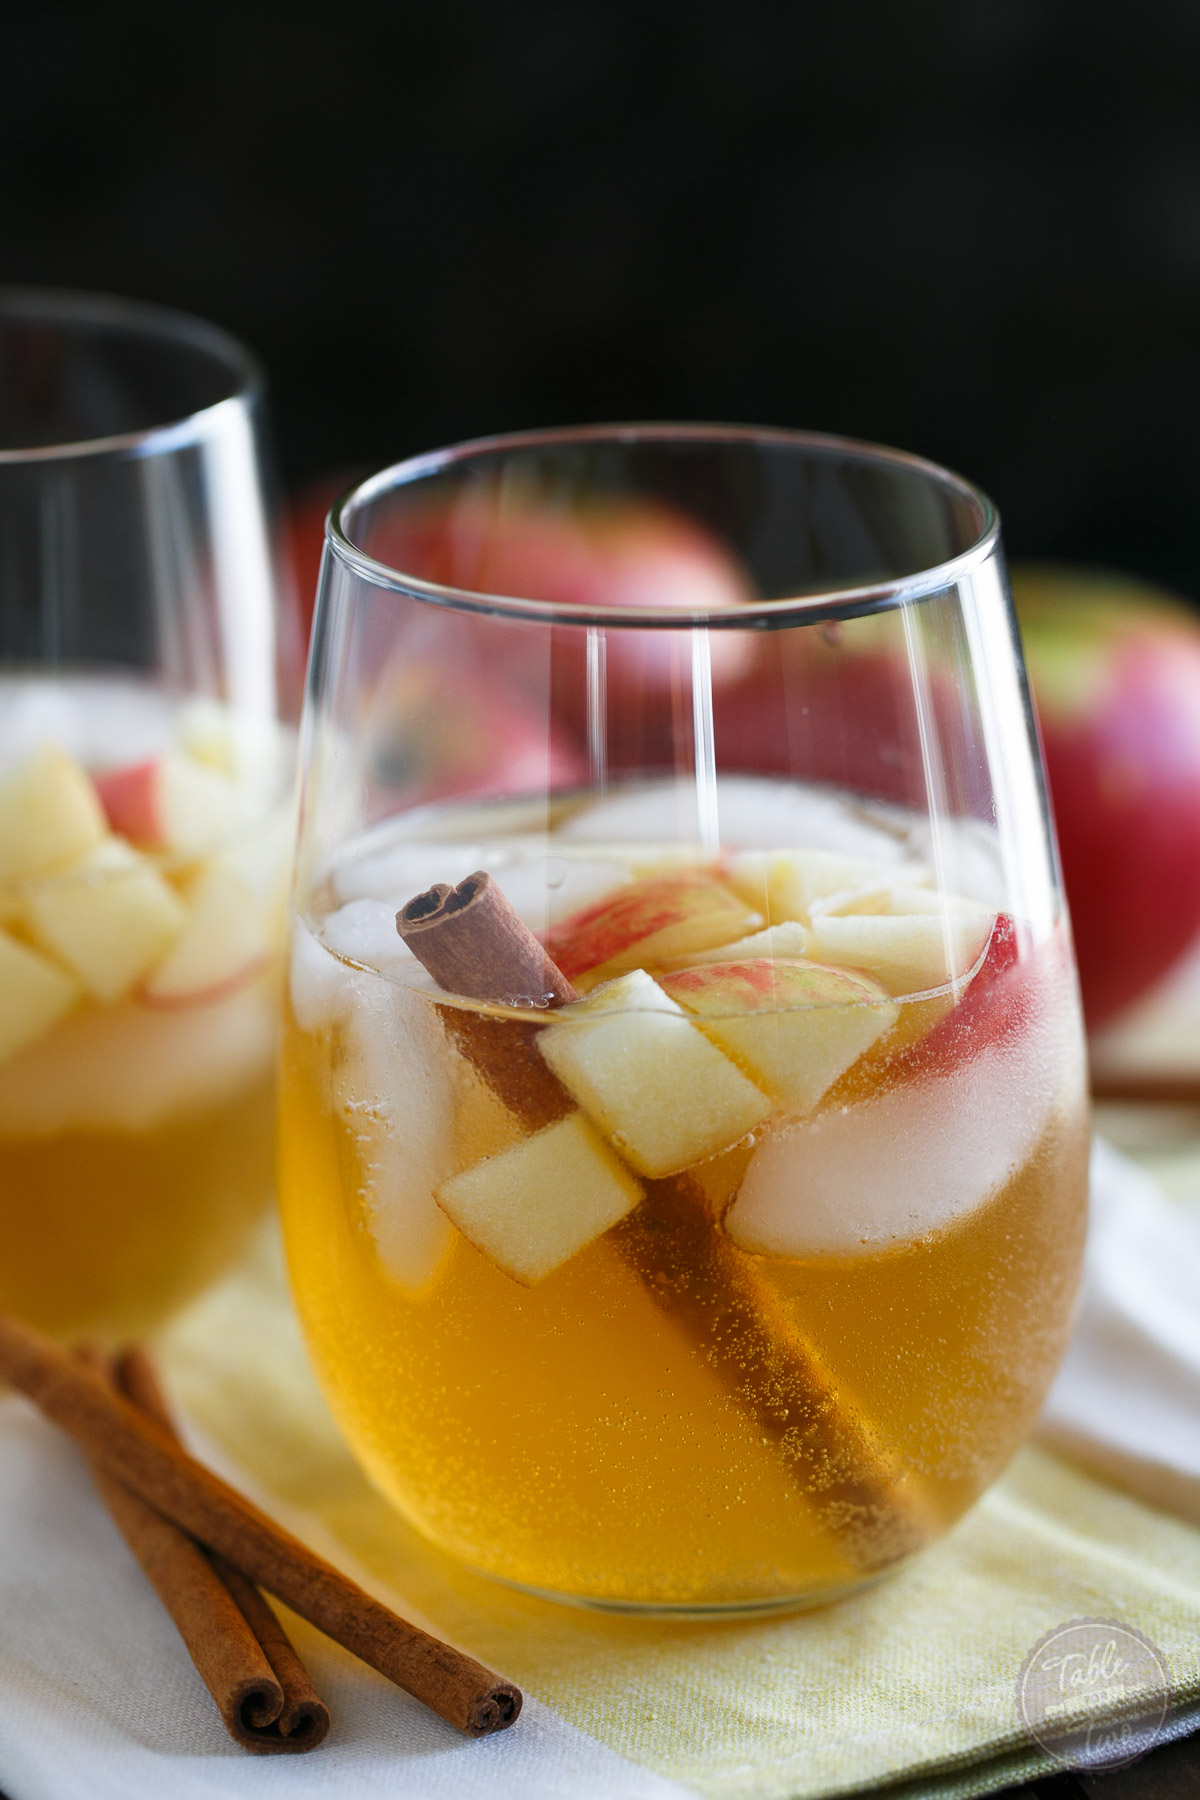 Your new favorite Fall cocktail! This cocktail has all the aromas of Fall and the cinnamon pear simple syrup gives just the right amount of sweetness! The perfect cocktail for those Fall parties!